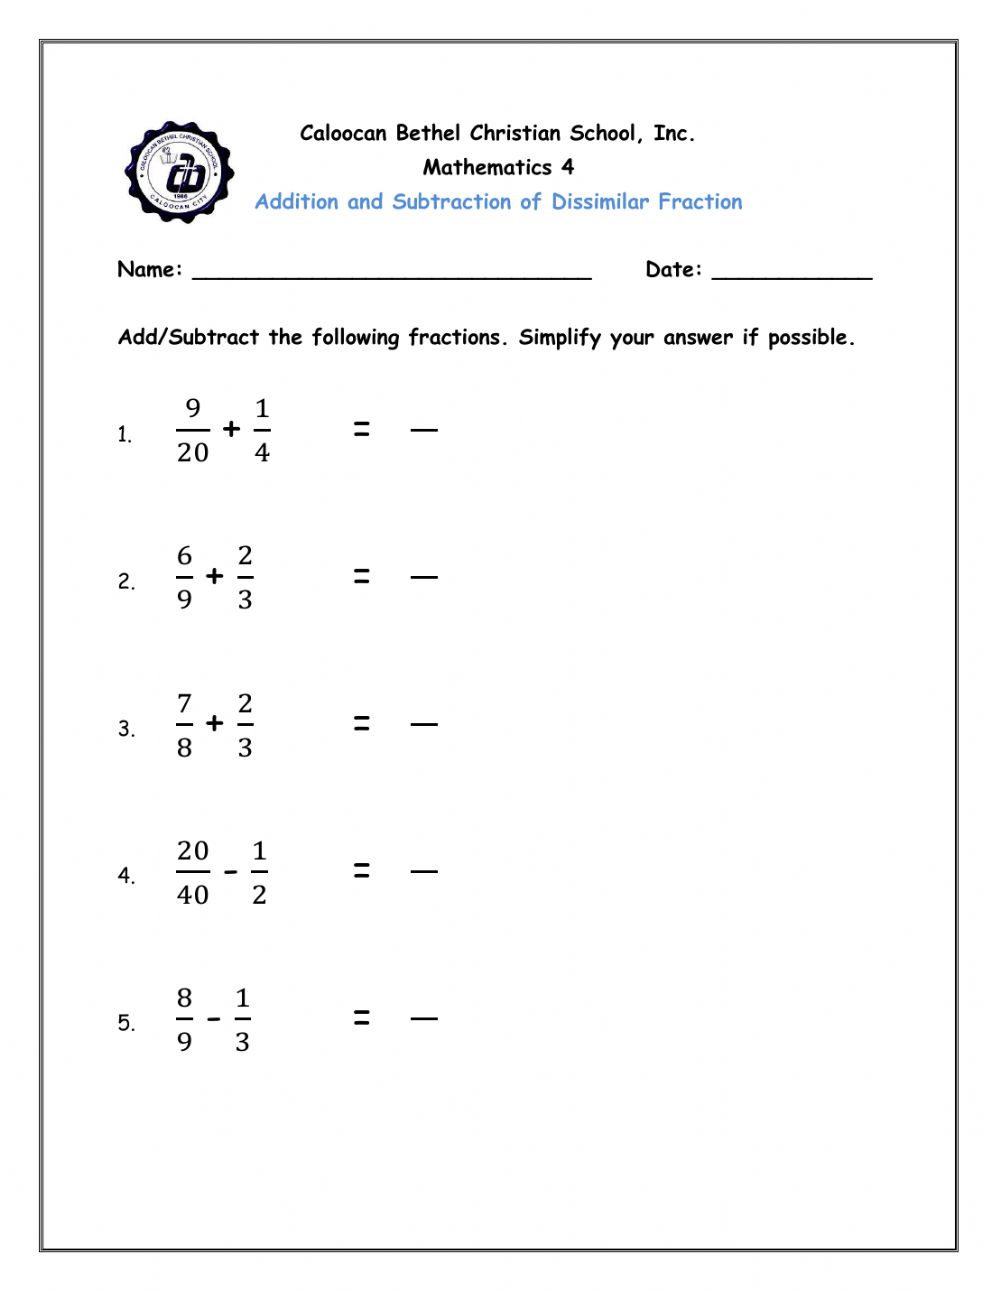 Addition And Subtraction Of Dissimilar Fraction Worksheet Adding dissimilar fractions worksheet